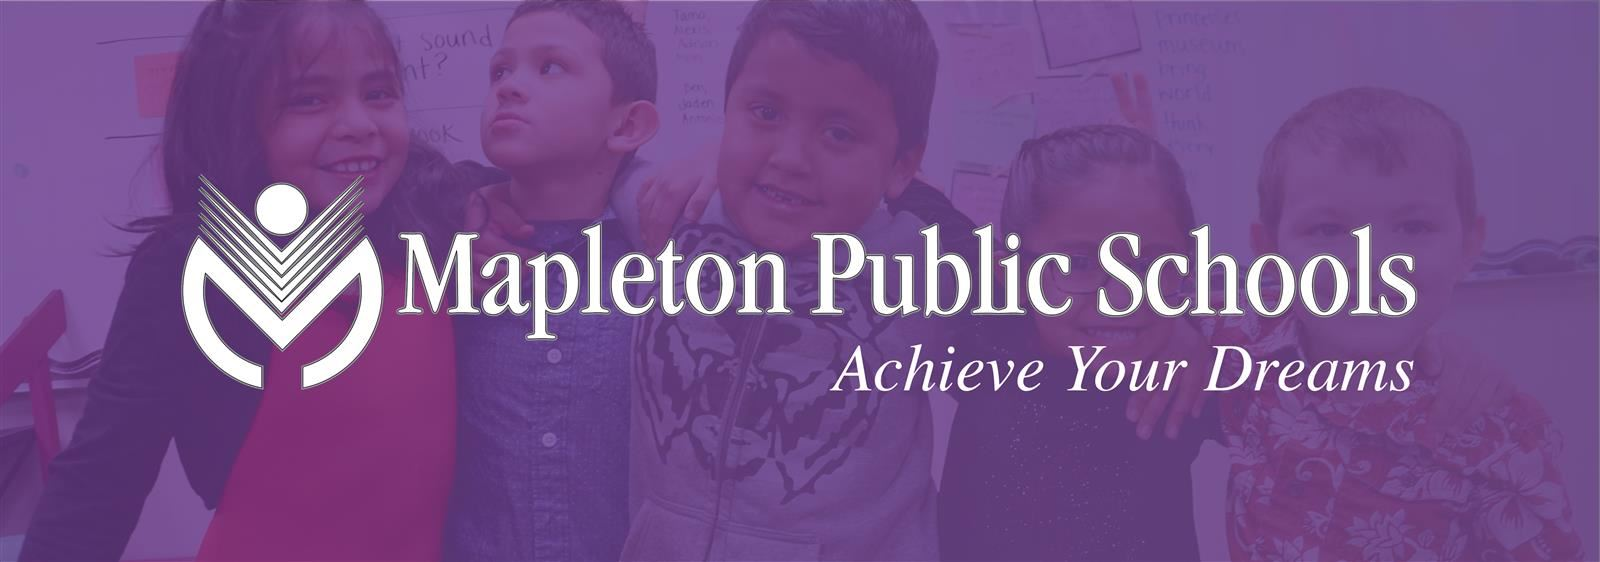 Kids posing for photo with Mapleton logo